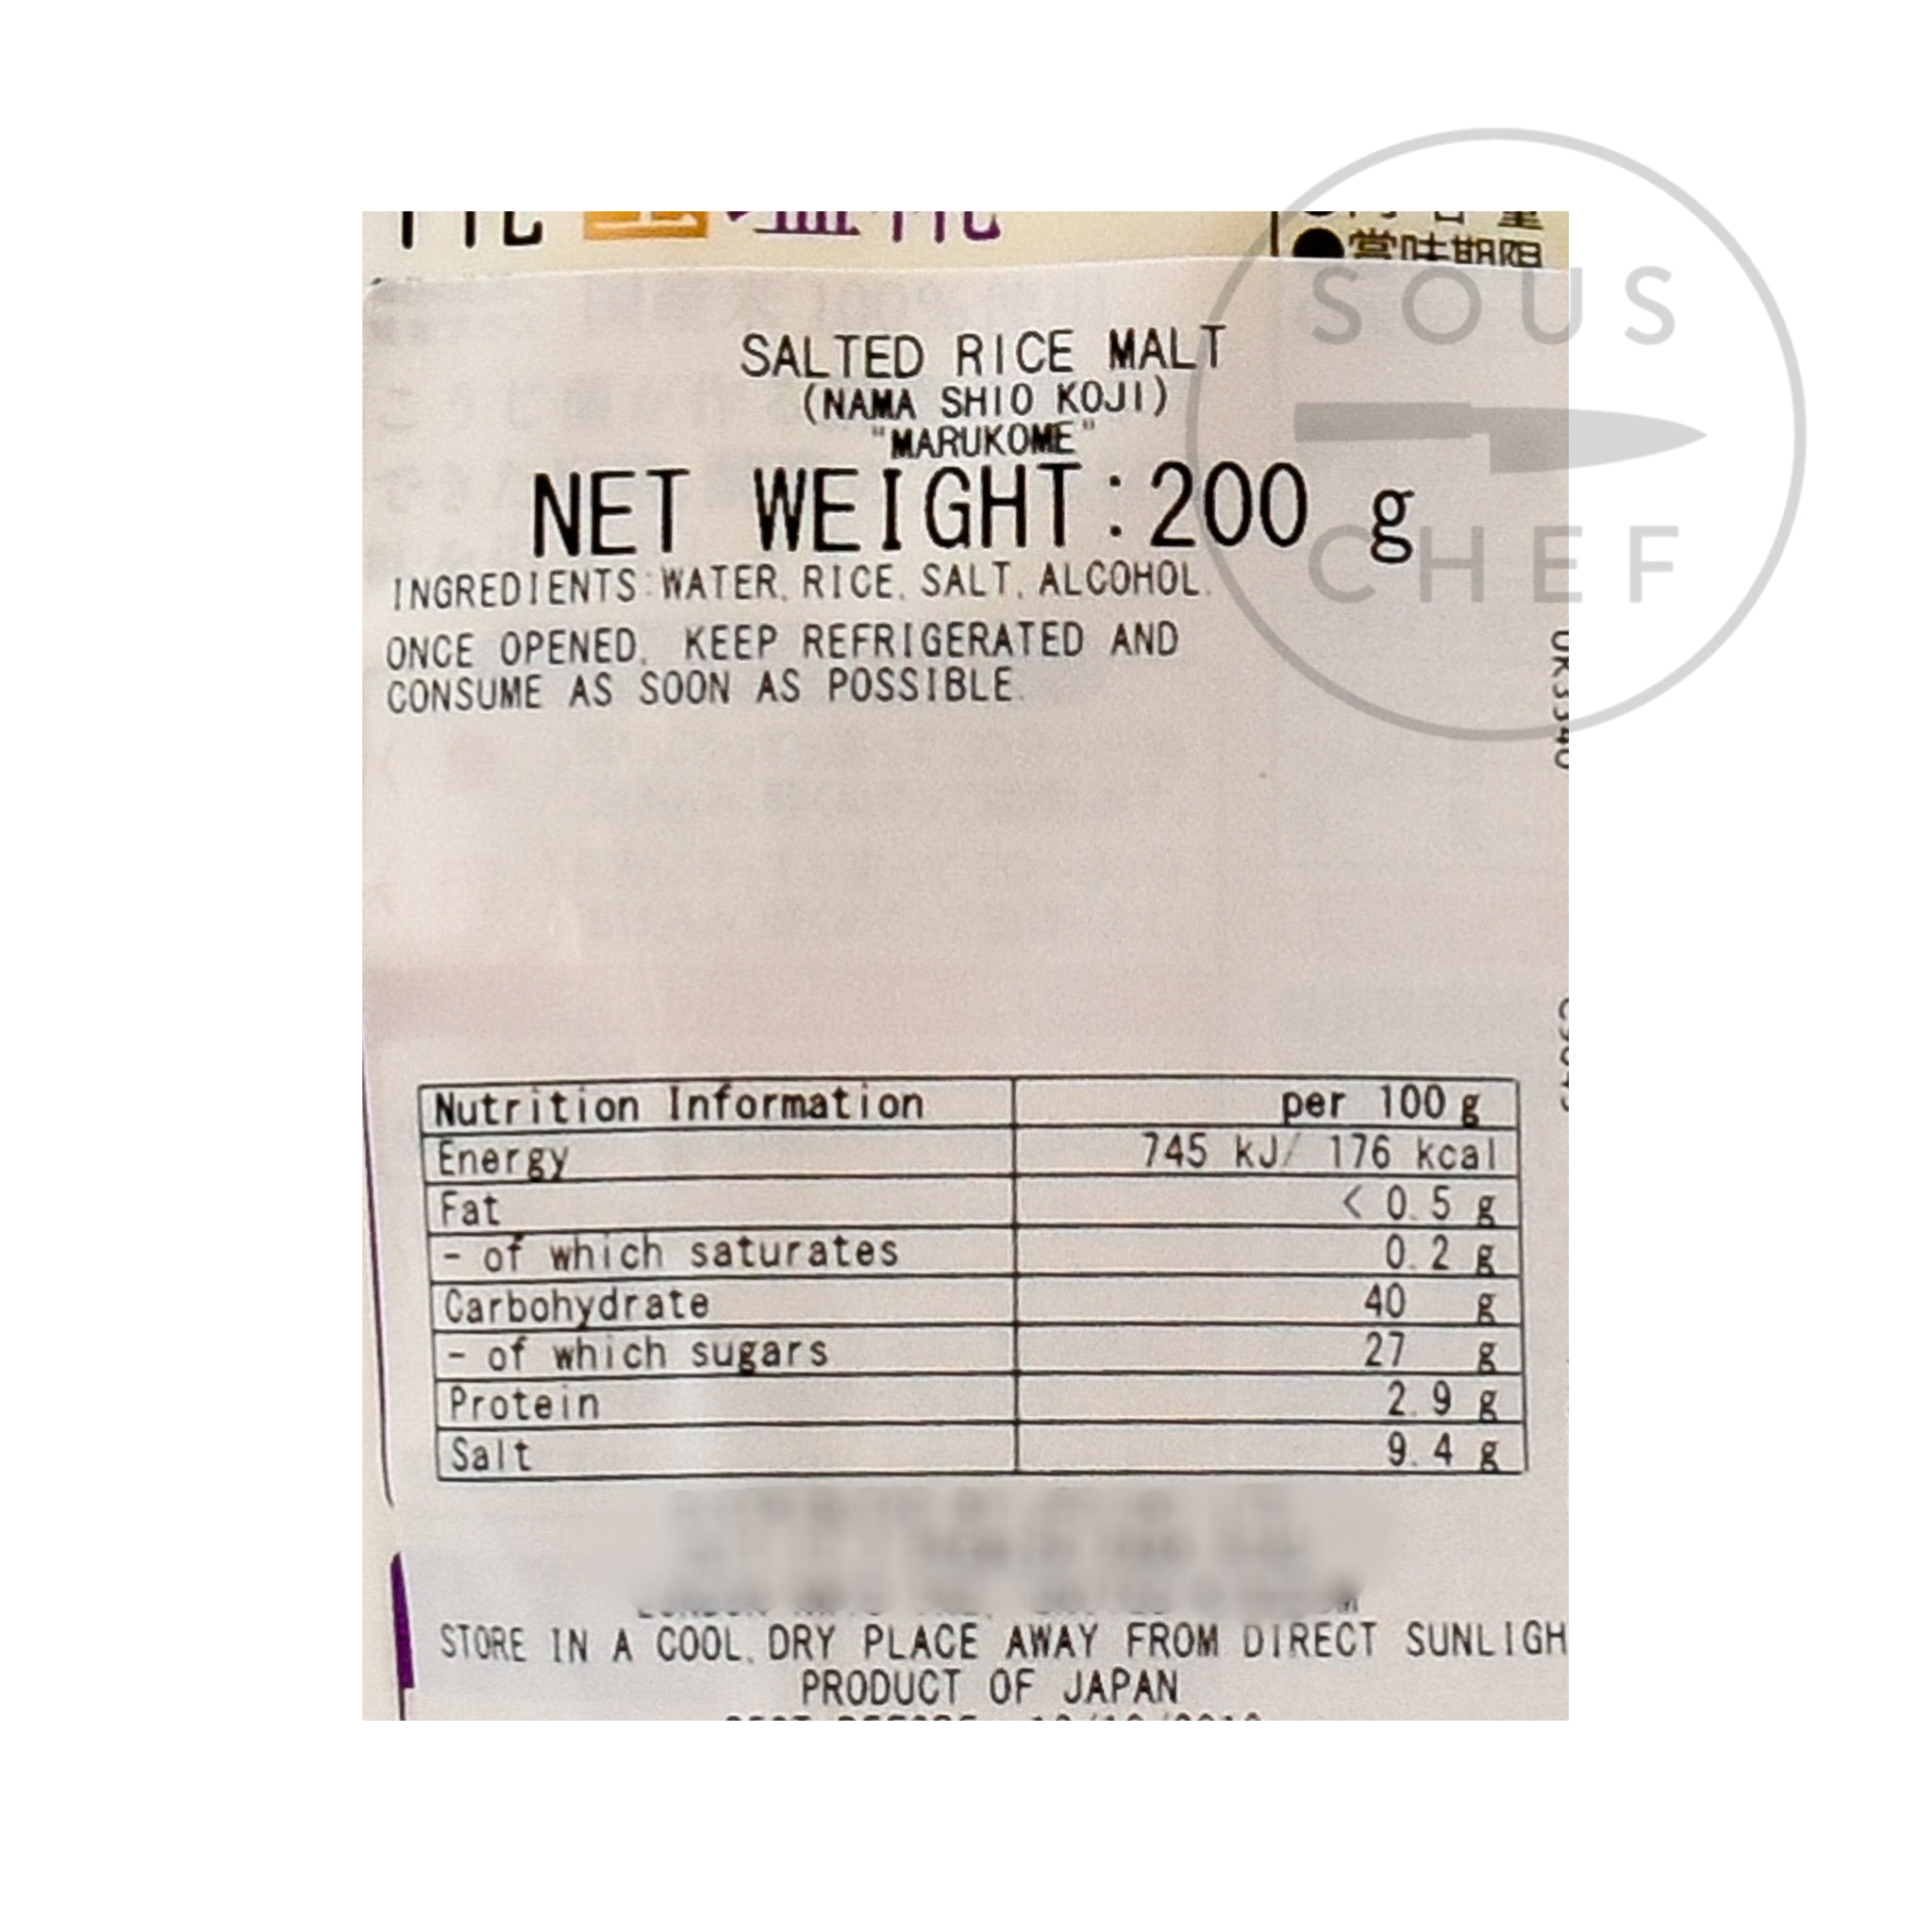 Marukome Nama Shio Koji 200g nutritional information ingredients